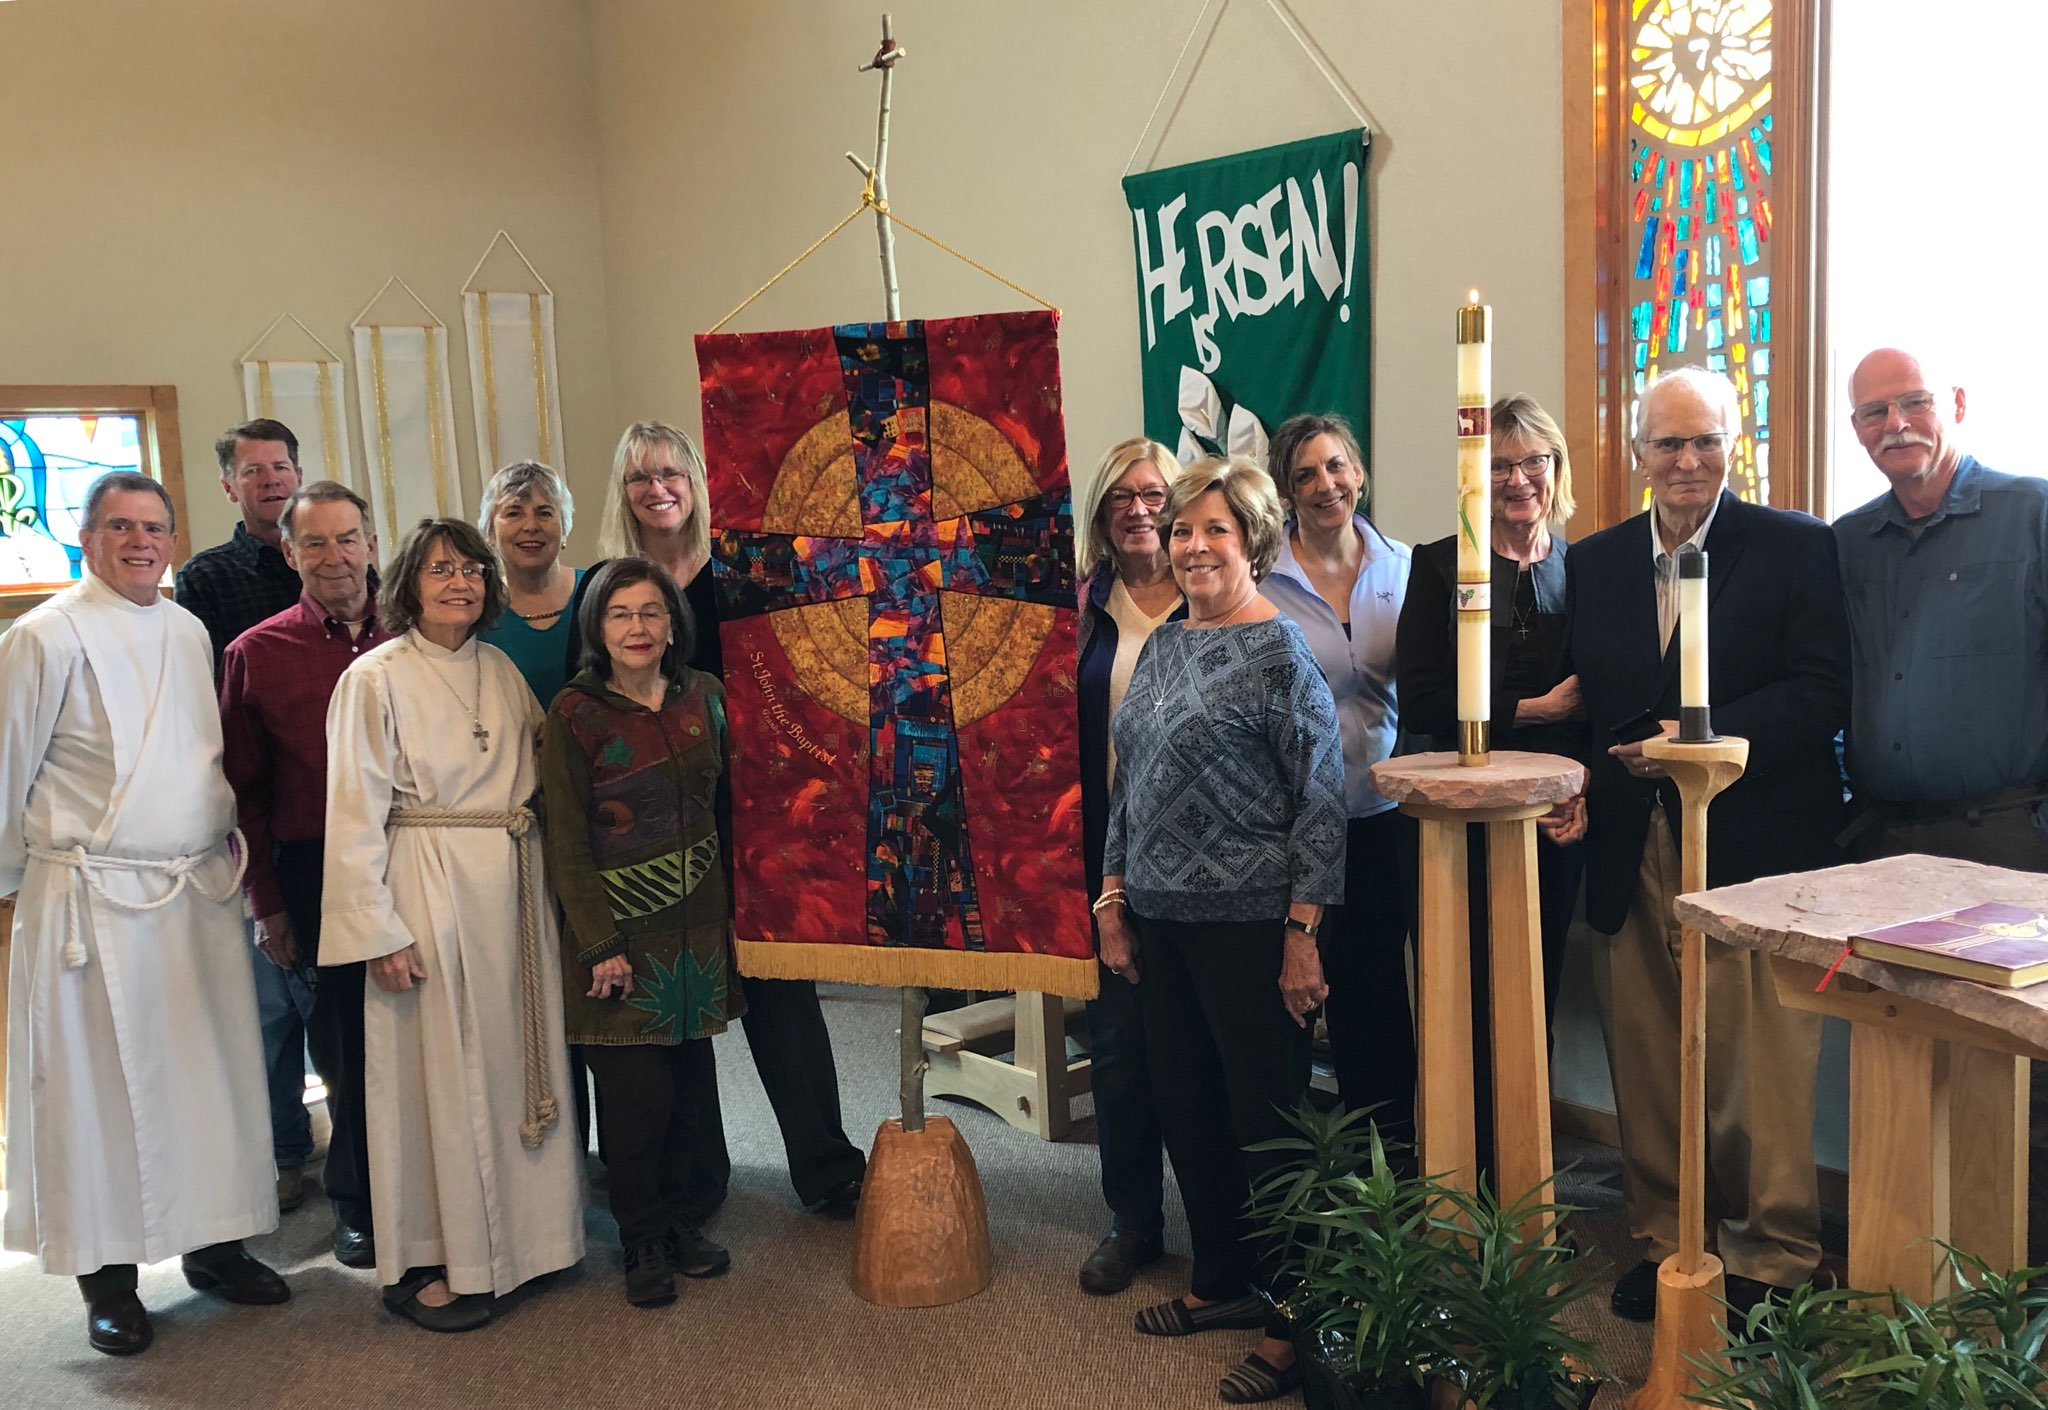 - On May 19, 2019, the new Ceremonial Banner for St. John's was unveiled to the congregation and blessed. This beautiful banner was designed by parishioner Margaret Watts, lovingly sewn and quilted by Deborah Lord Treiber (of the Peaks and Pines Quilt Guild), and dedicated in memory of Ann McLean.Those attending the unveiling and blessing include (from left) Fr. Matthew Frey, David Craig, Lorie Wheeler, Teri Jurgens, Pam Hansen, Margaret Watts, Kay Irvine, Roxanne Singler, Betsy Pettit, Katharine Frey, Sherry Erzinger, Will Wamsley, and Gary Piper.